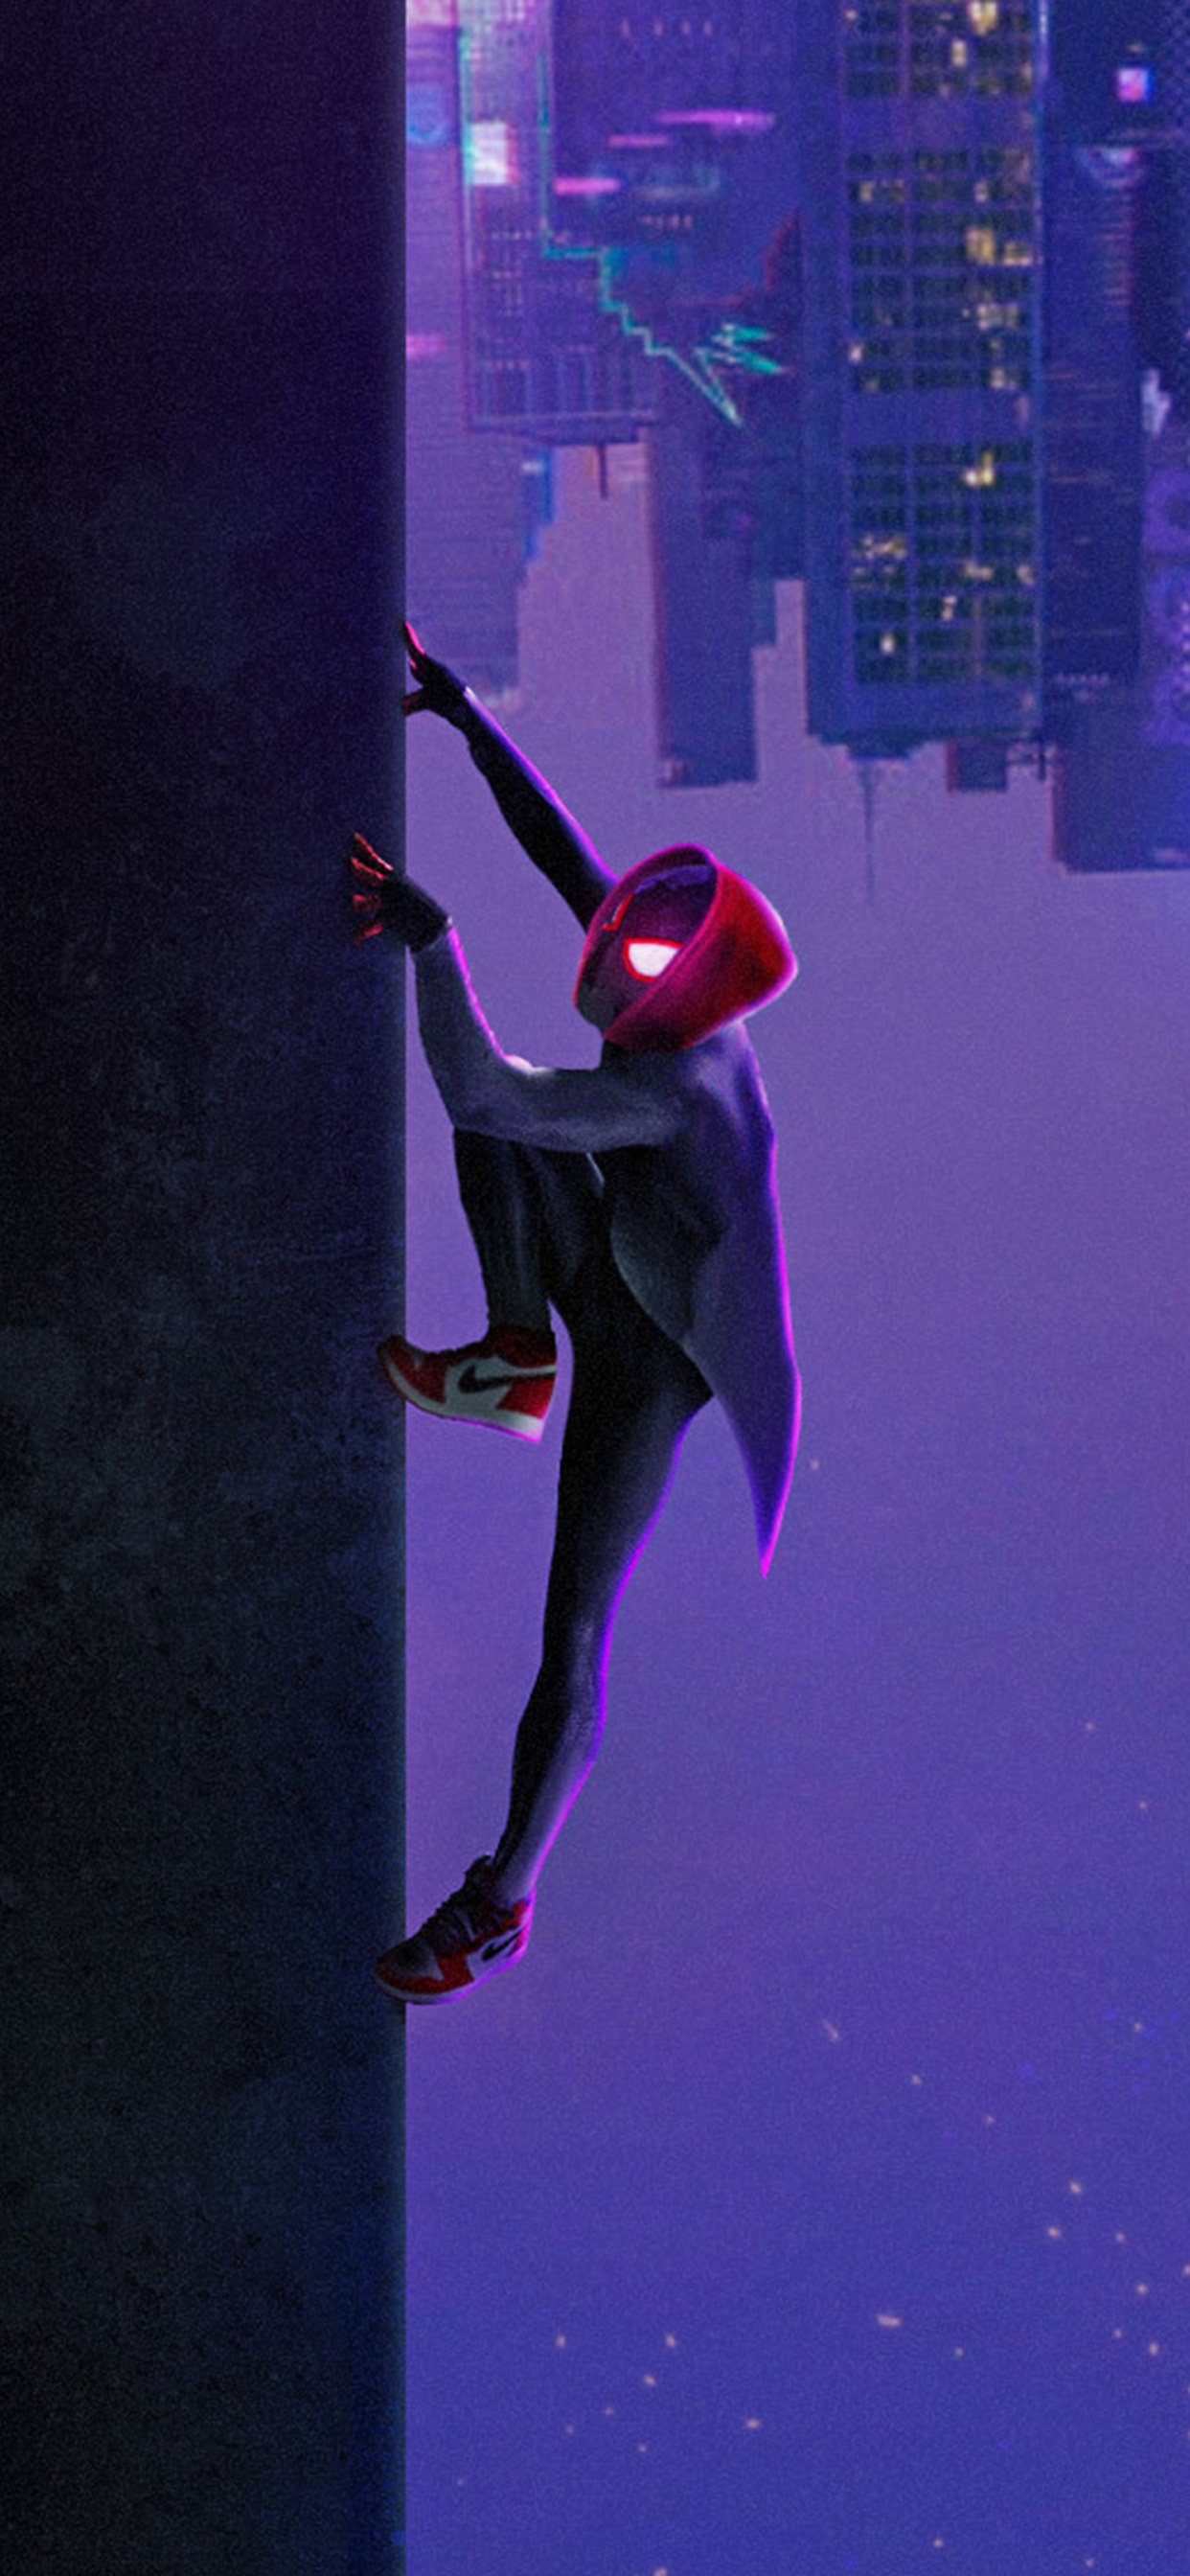 Spider Man Into The Spider Verse Iphone Xs Max Wallpaper